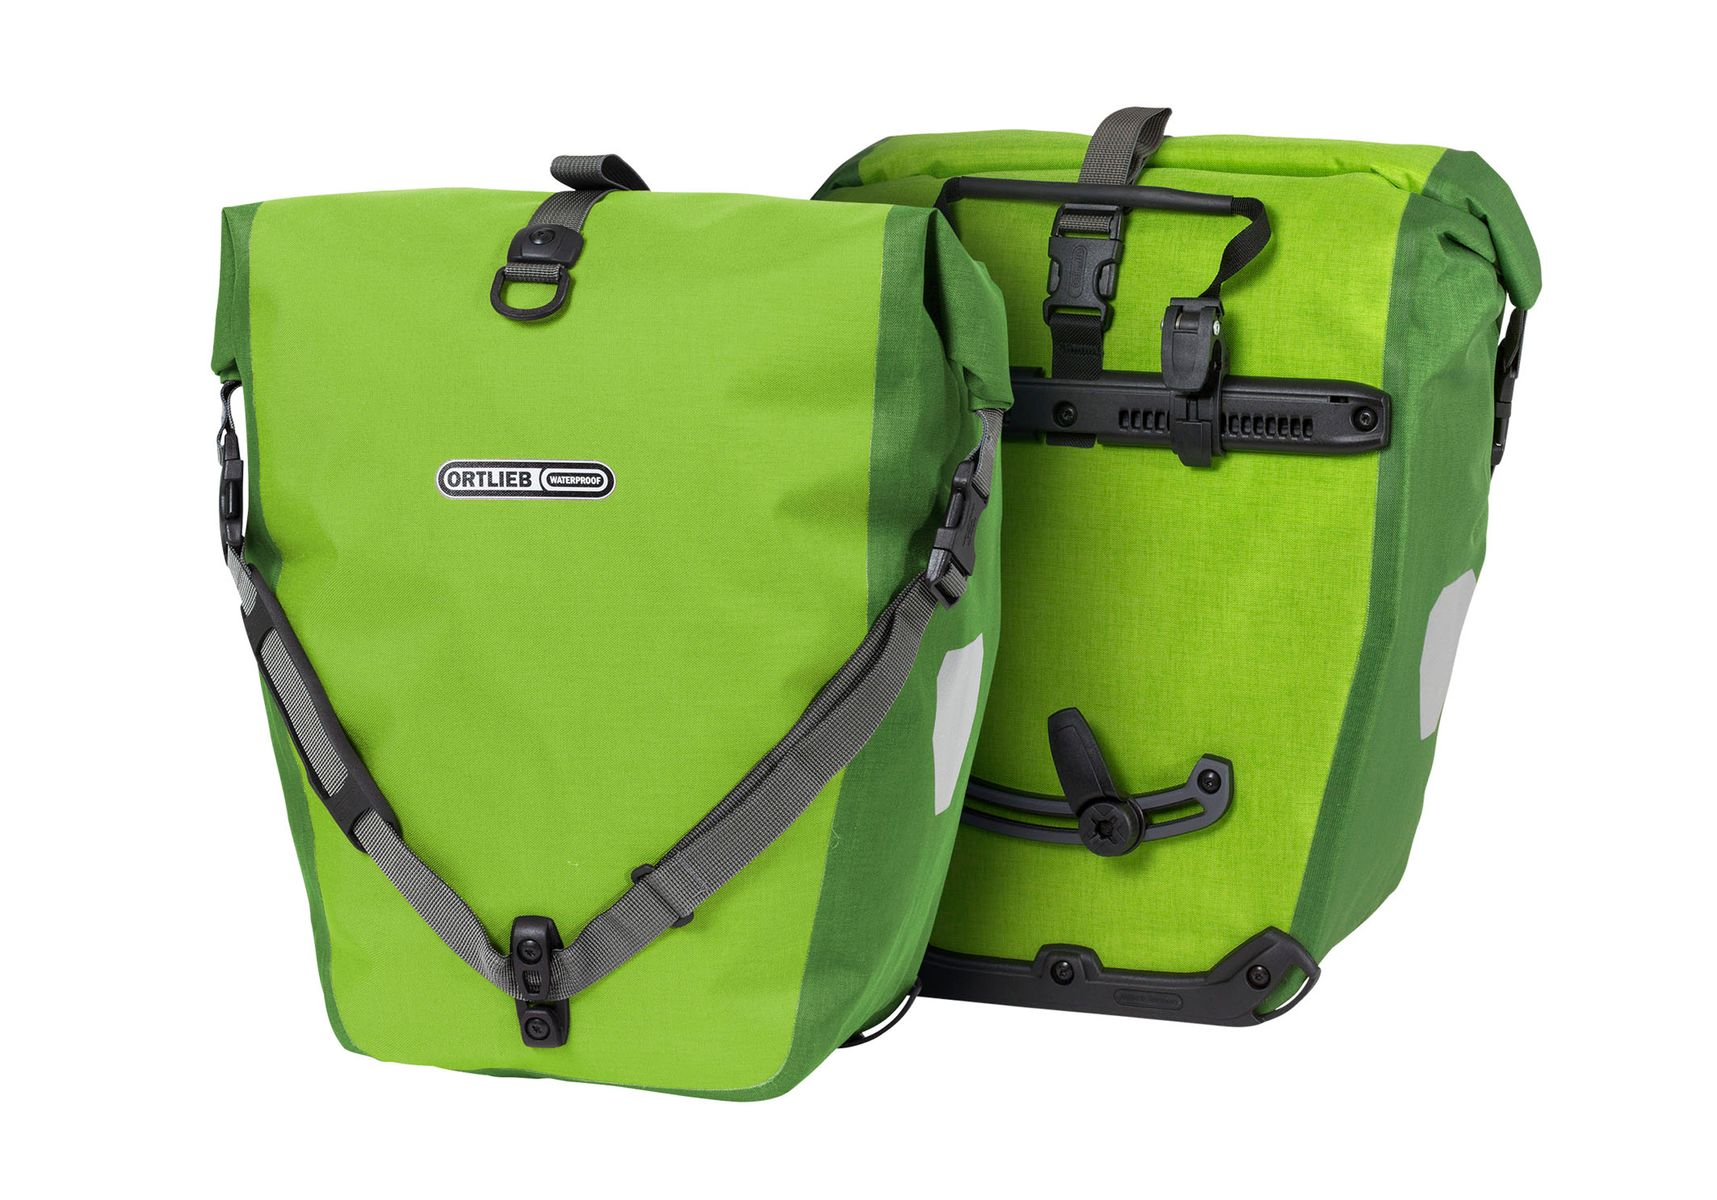 ORTLIEB Back Roller Plus set of two pannier bags | item_misc